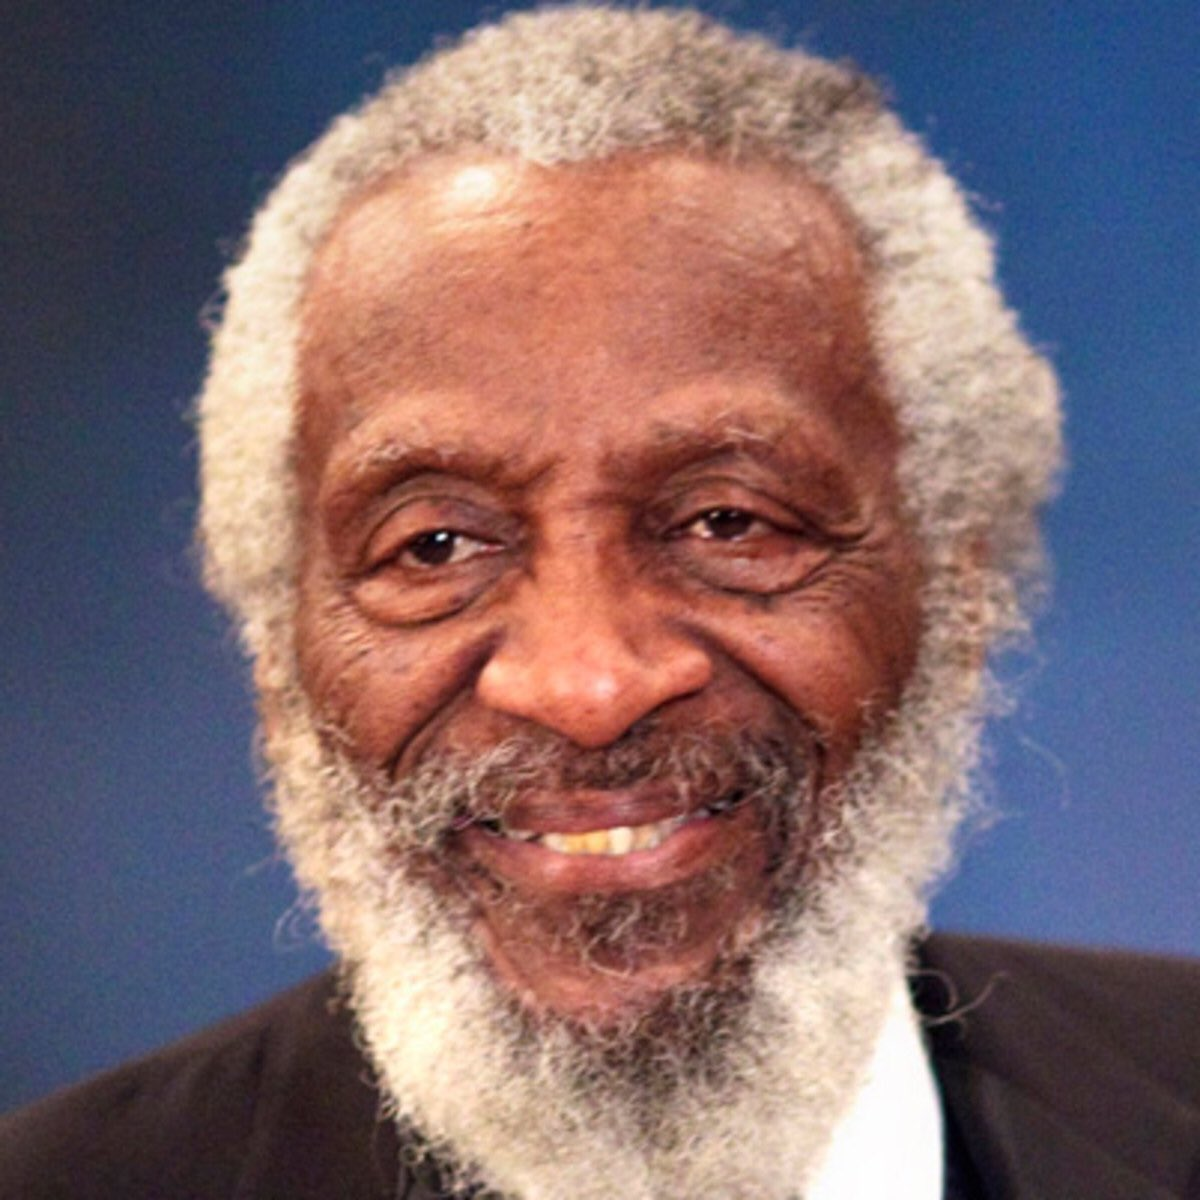 Iconic civil rights activist and comedian Dick Gregory has sadly passe...